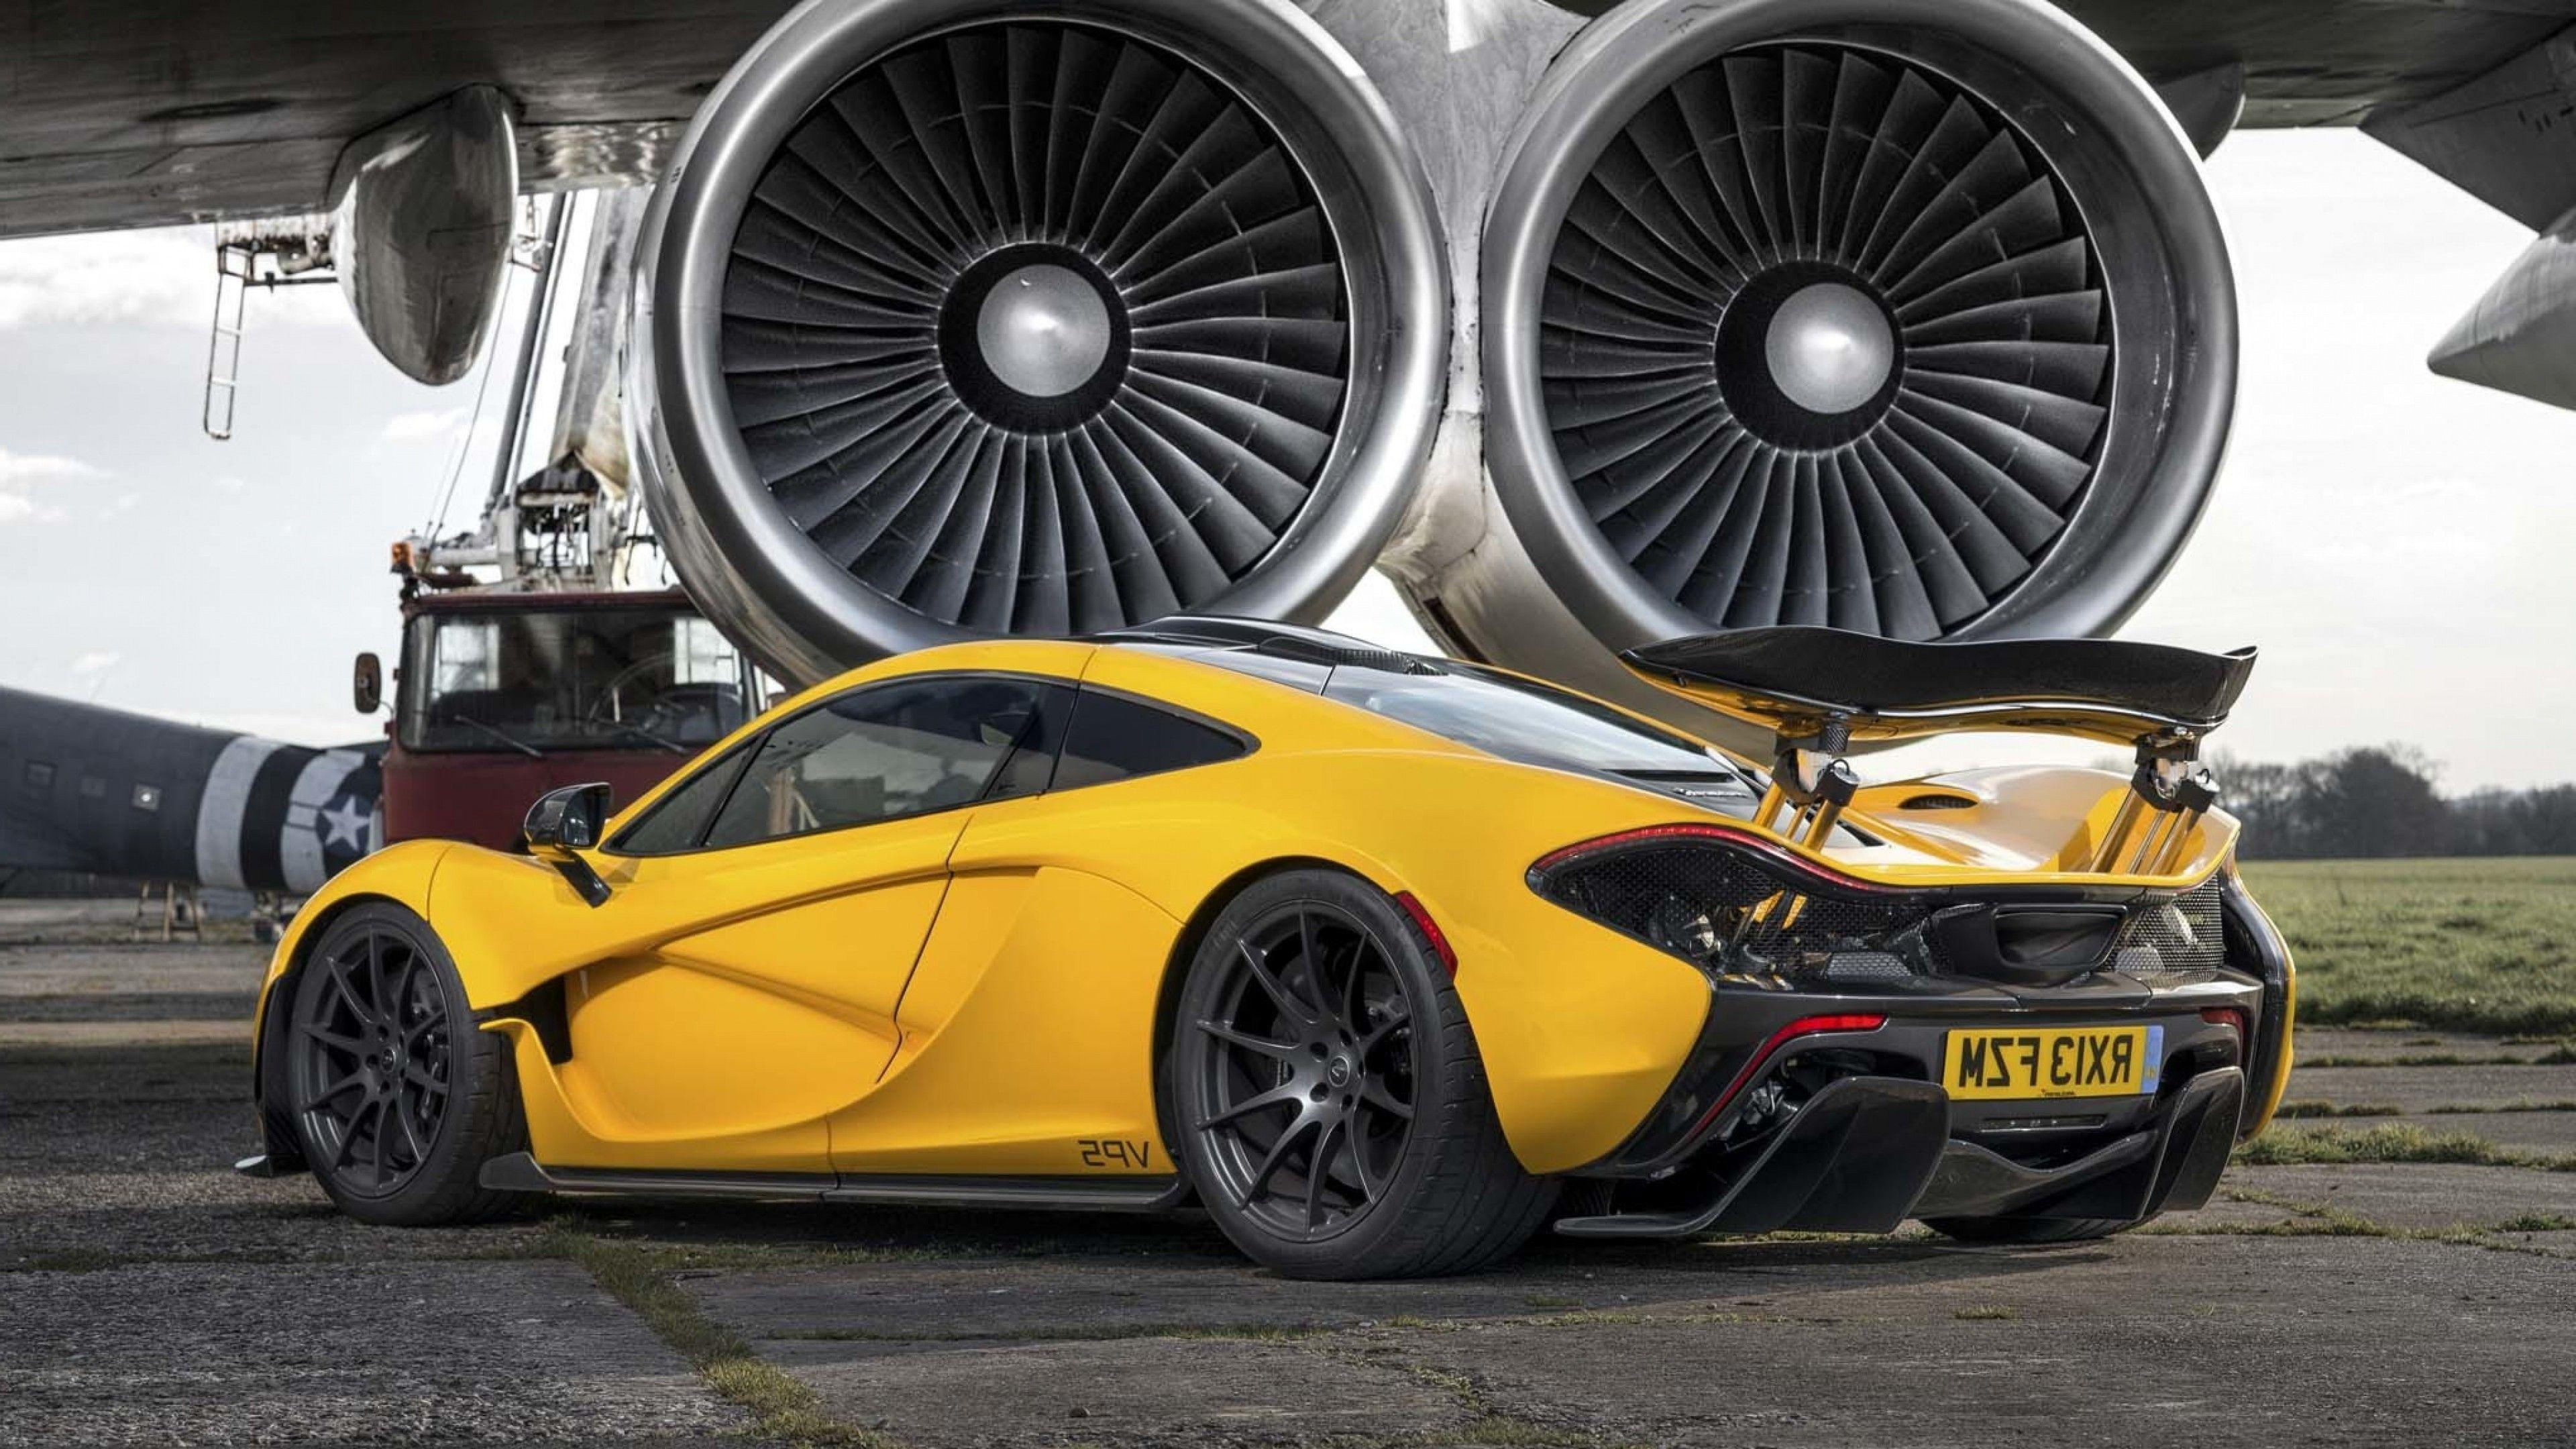 Mclaren P1 Yellow, HD Cars, 4k Wallpapers, Image, Backgrounds